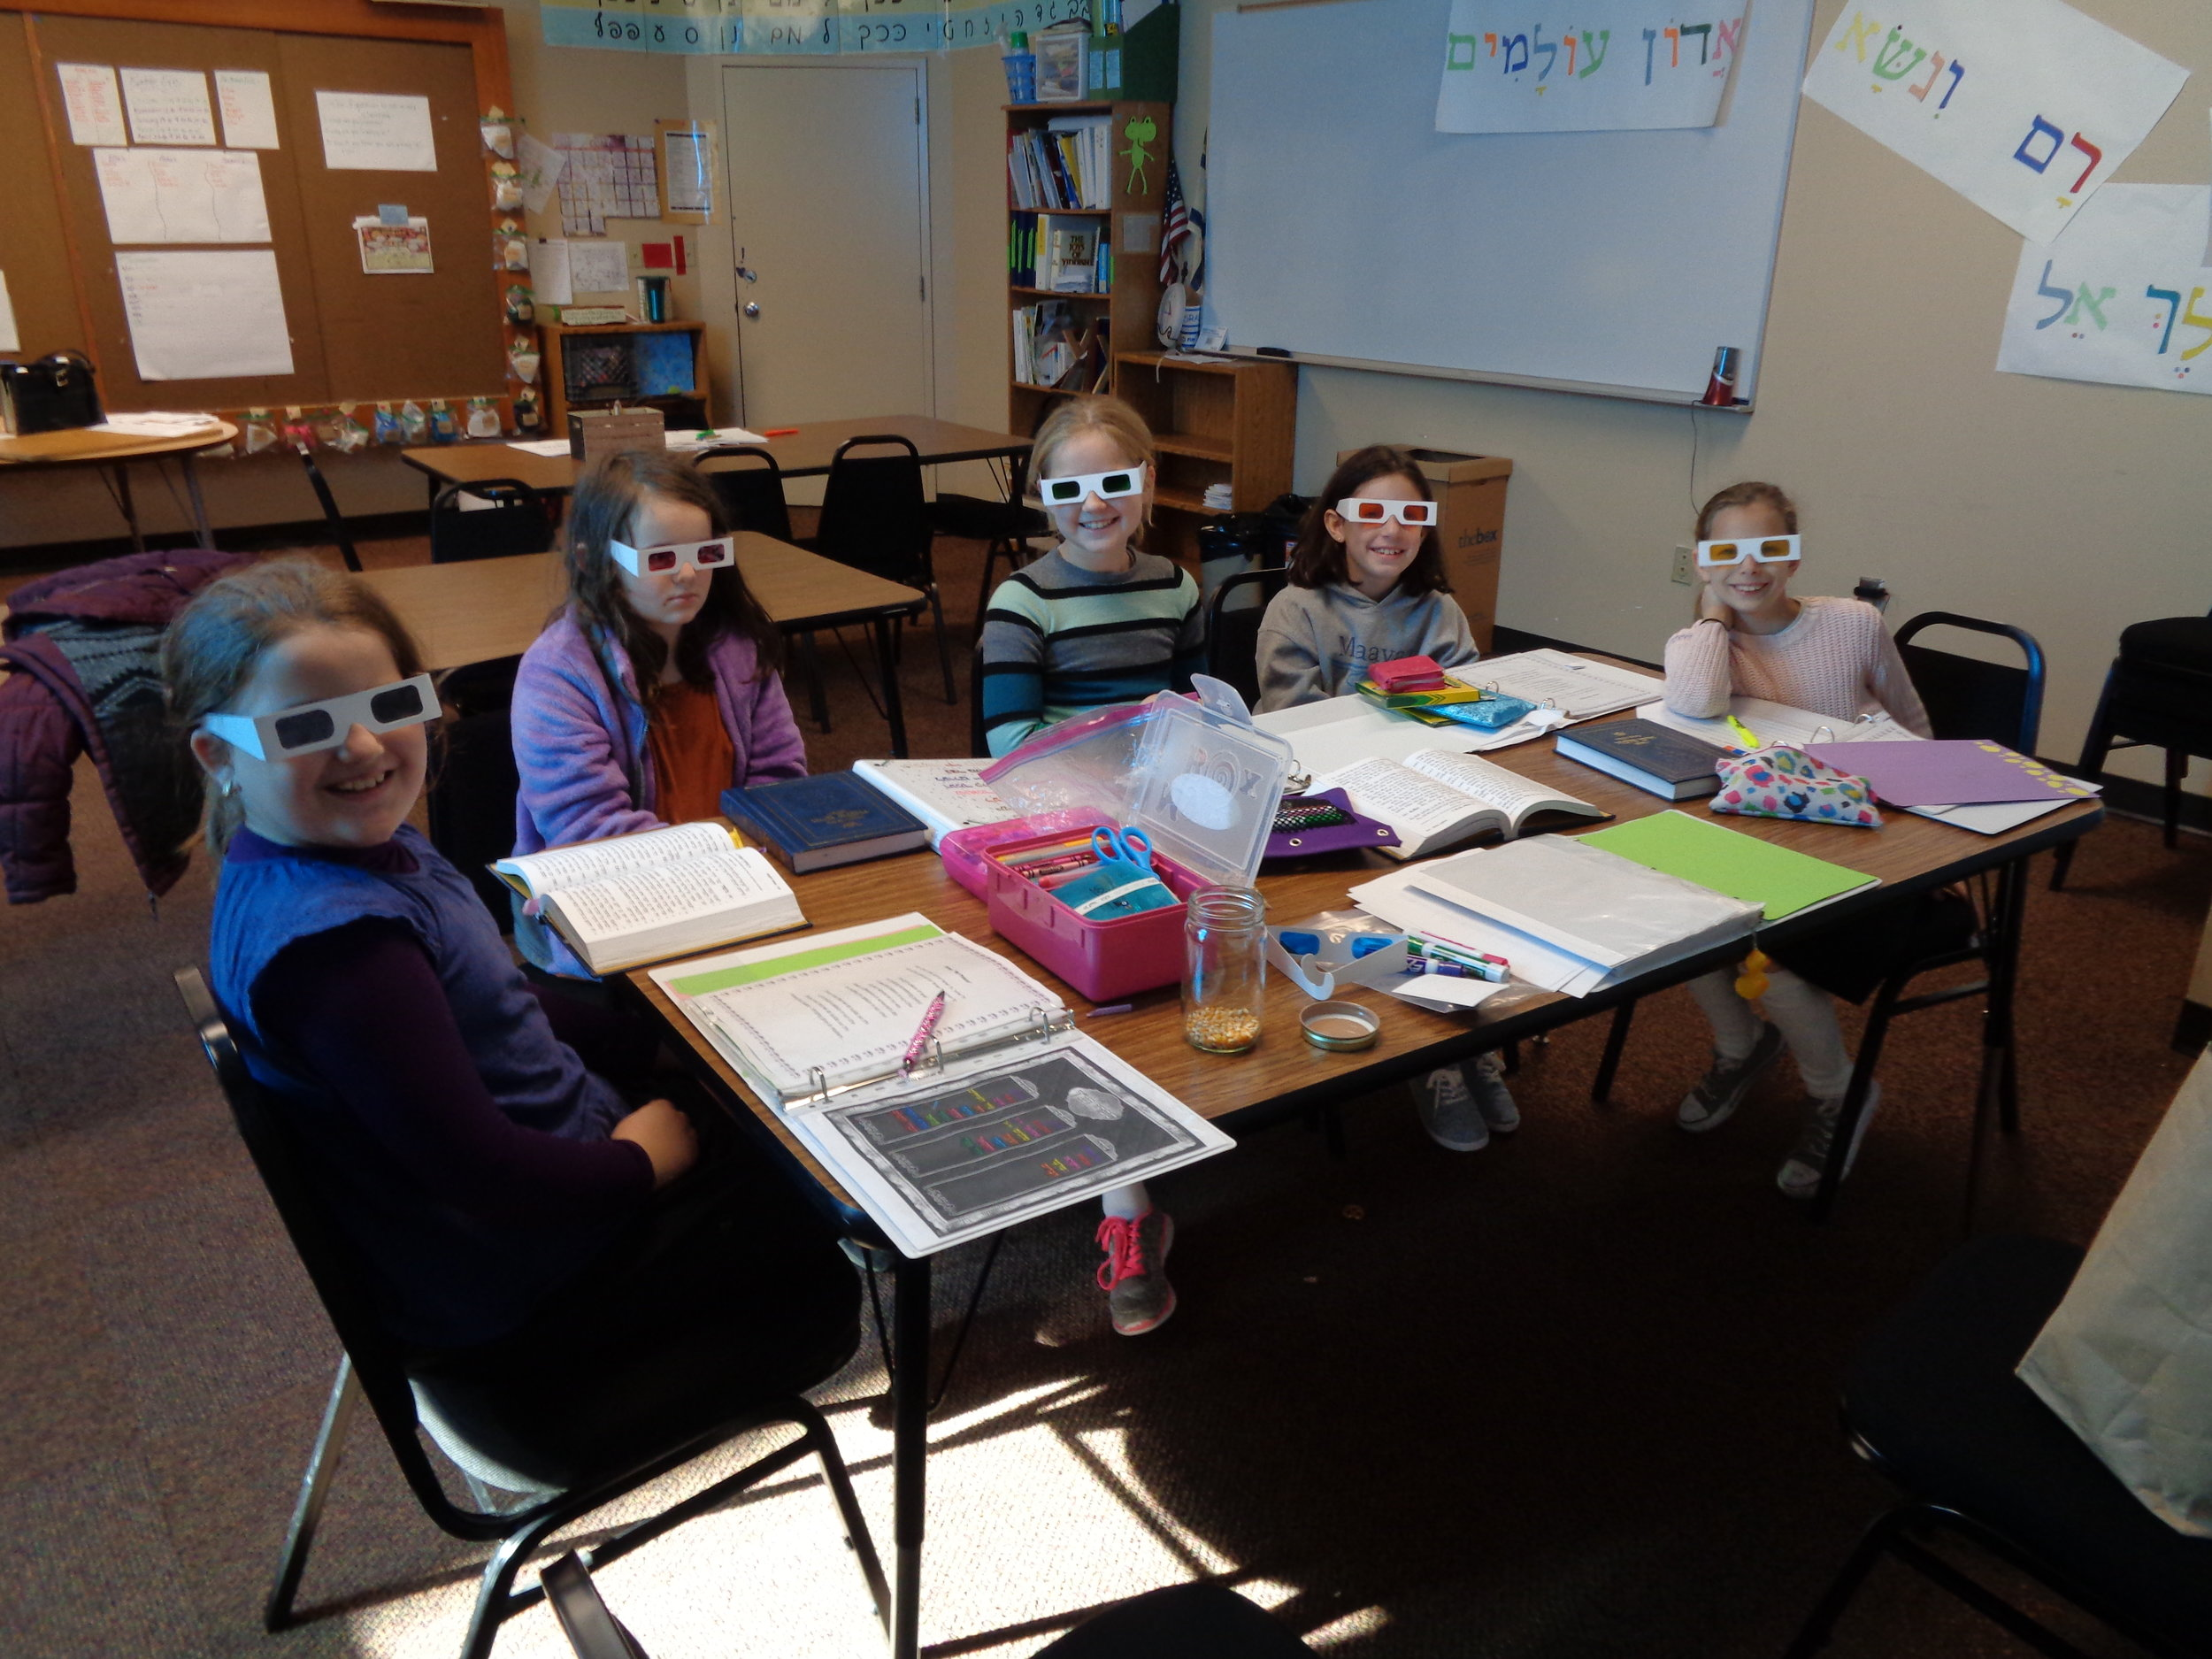 Students loved their new learning perspectives in our Pirkei Avos class today! Thank you Batsheva and CoJDS!   --- Malky Weisman, Maayan Torah Day School of Portland